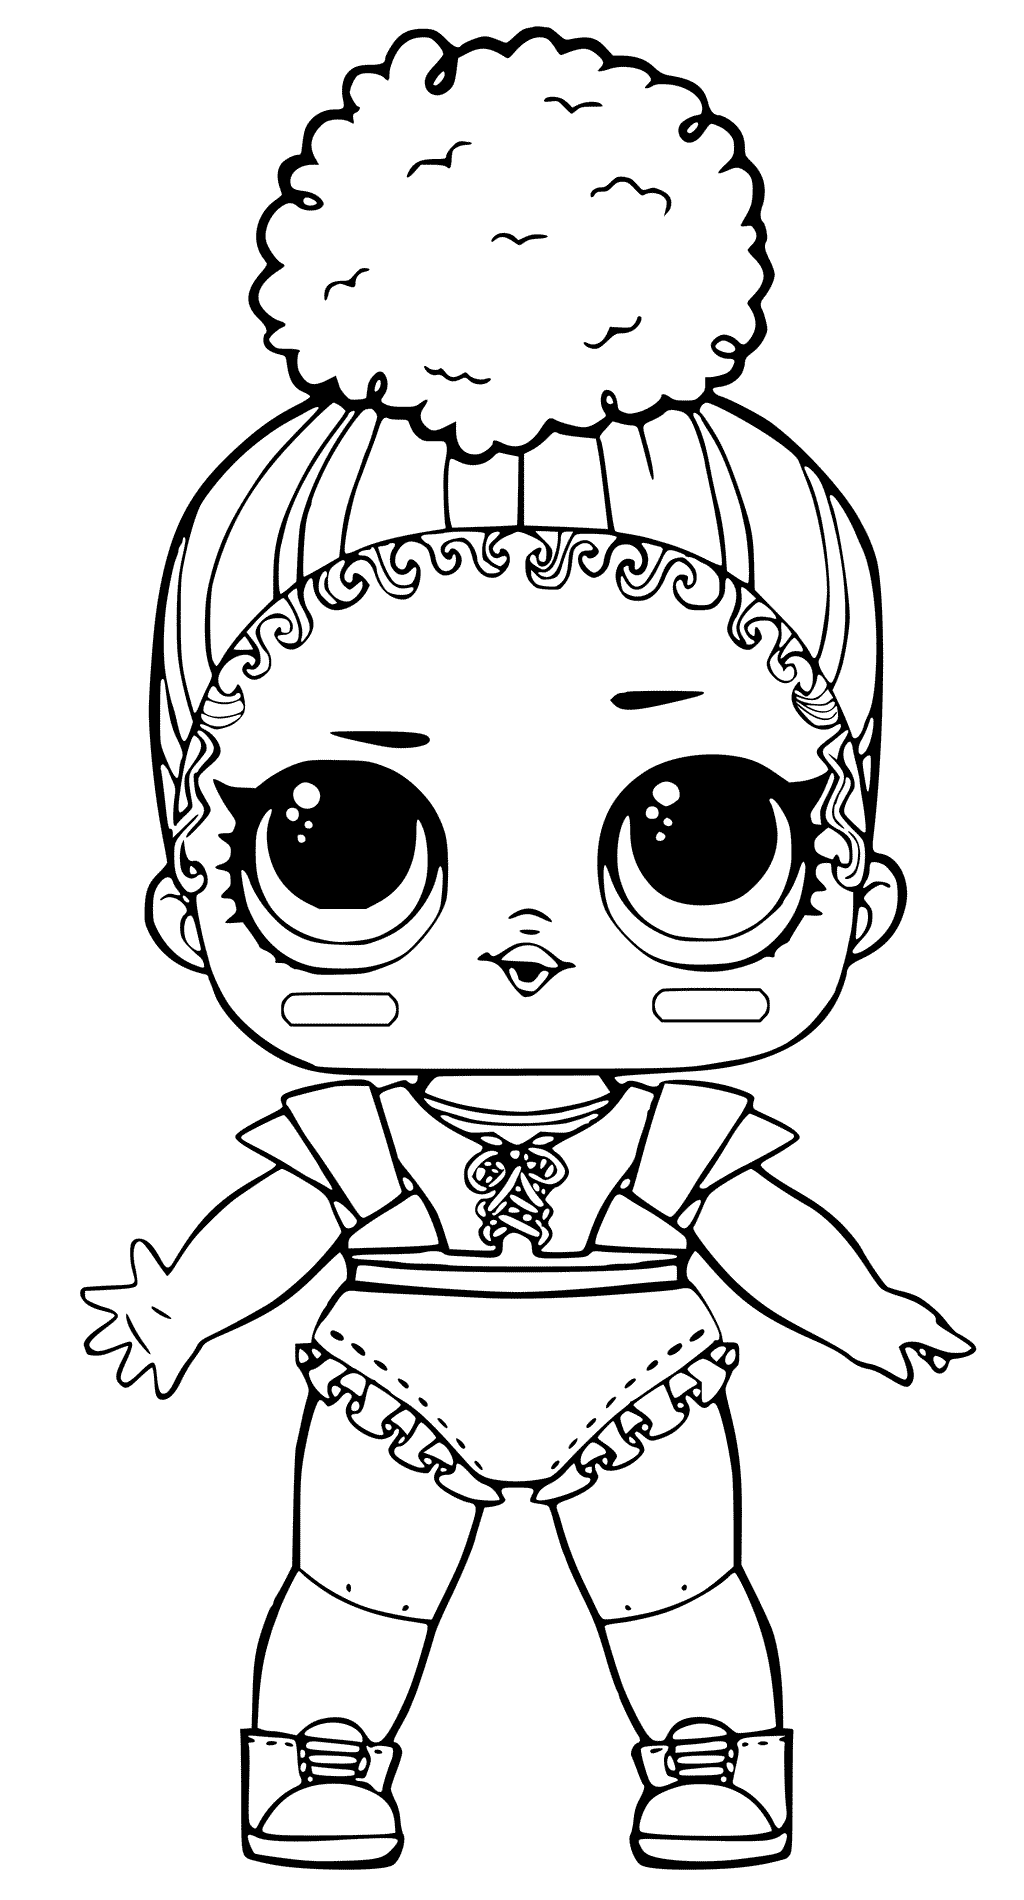 coloring template printable lol colouring pages printable lol doll funky coloring pages printable coloring colouring lol template pages